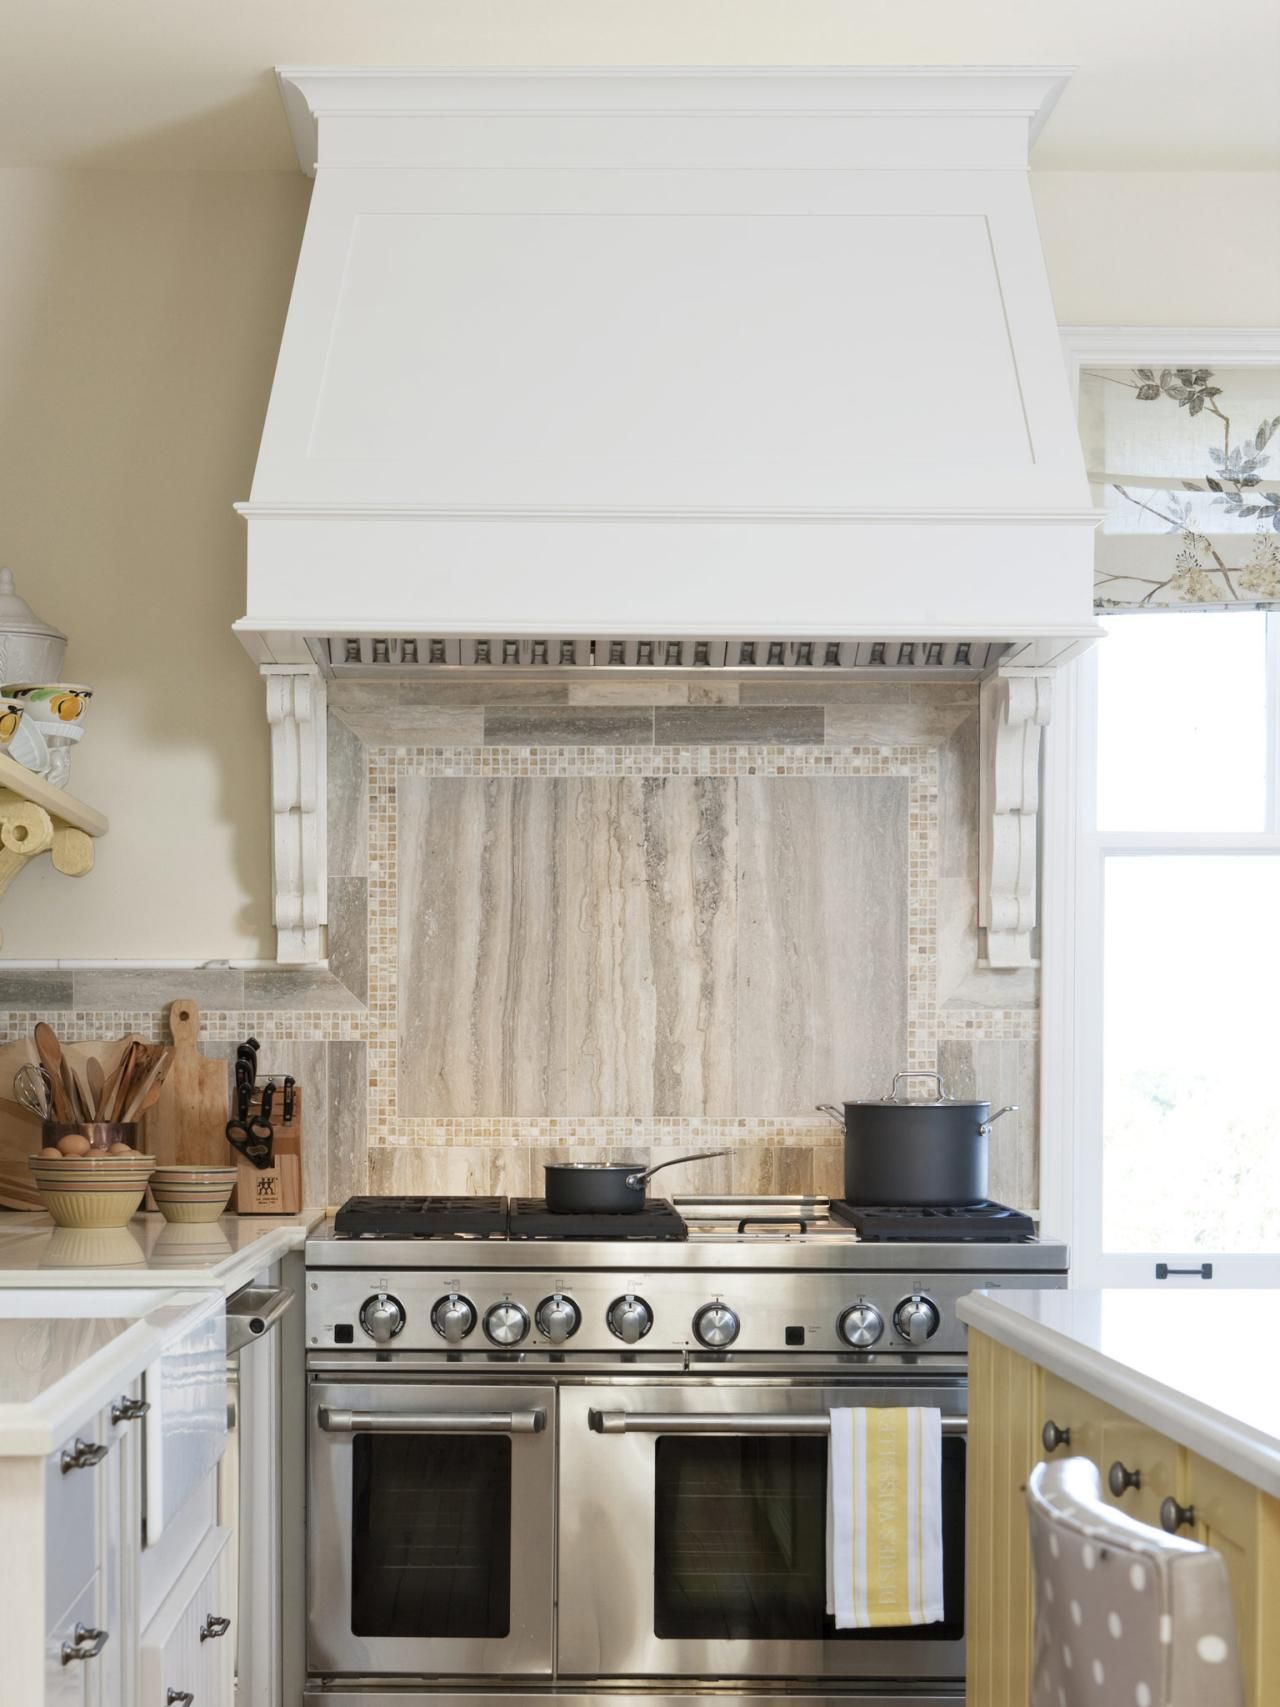 The 48-inch gas range is the same kind used in commercial kitchens ...